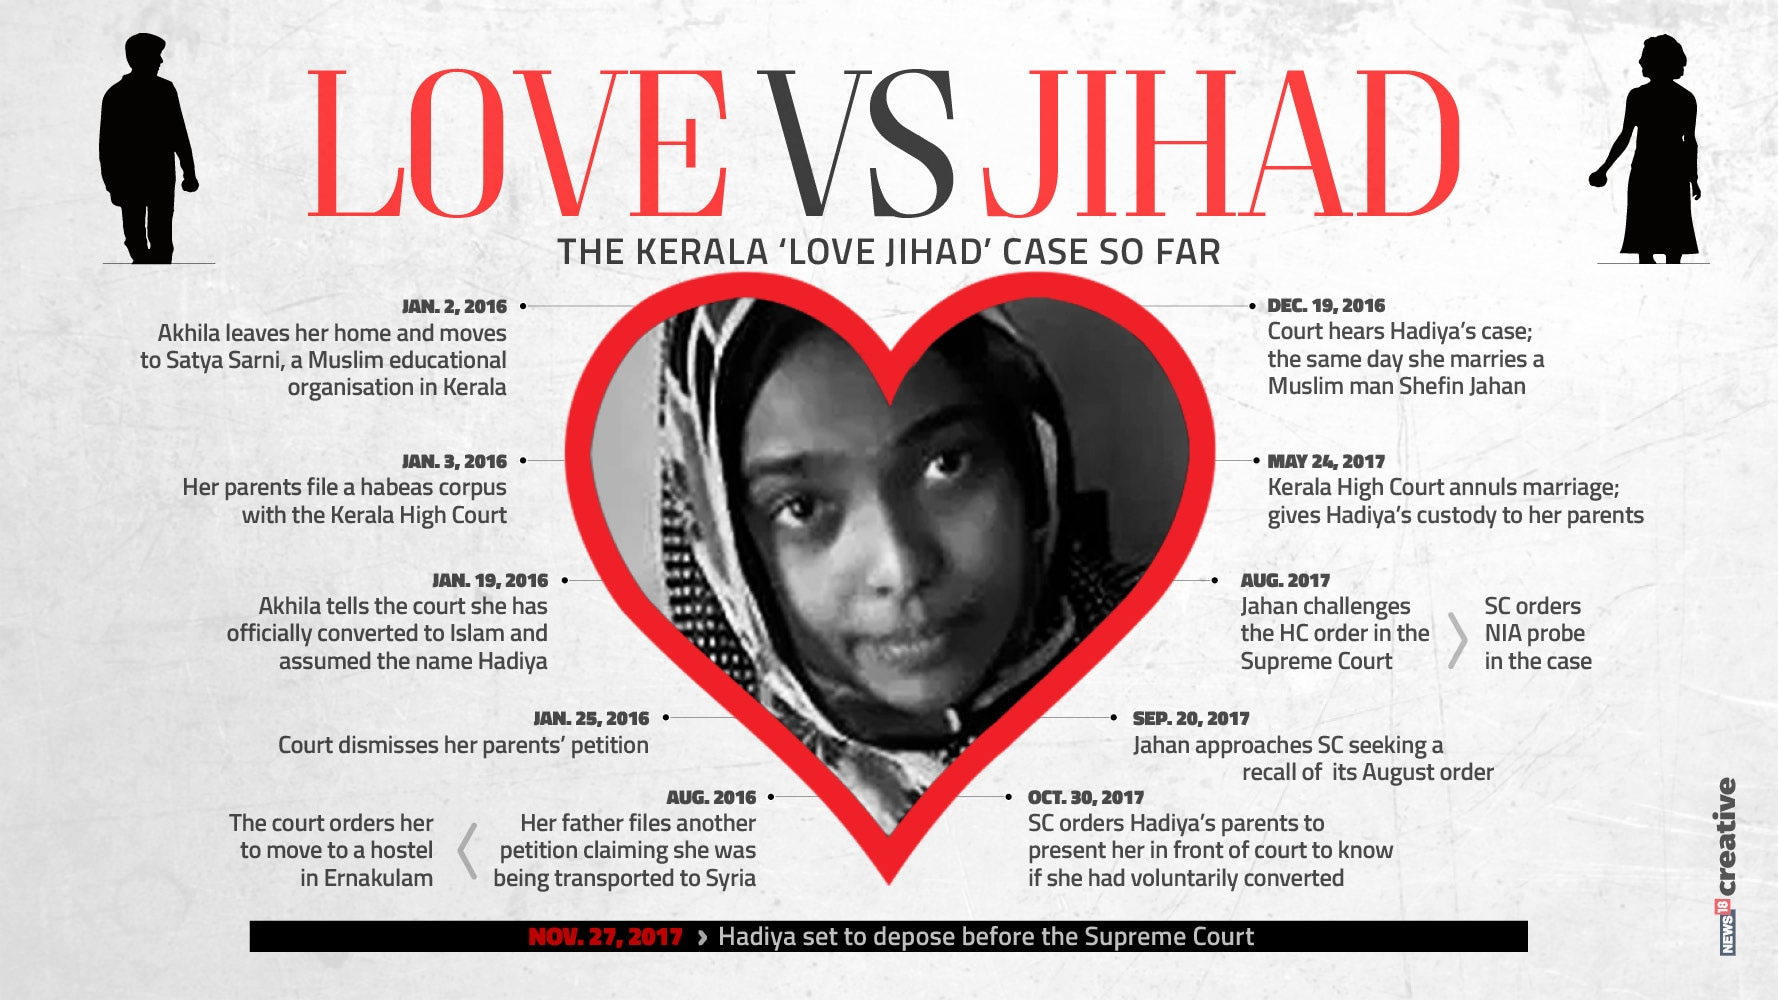 Kerala love jihad: Was HC justified in nullifying Hadiya's marriage, asks SC